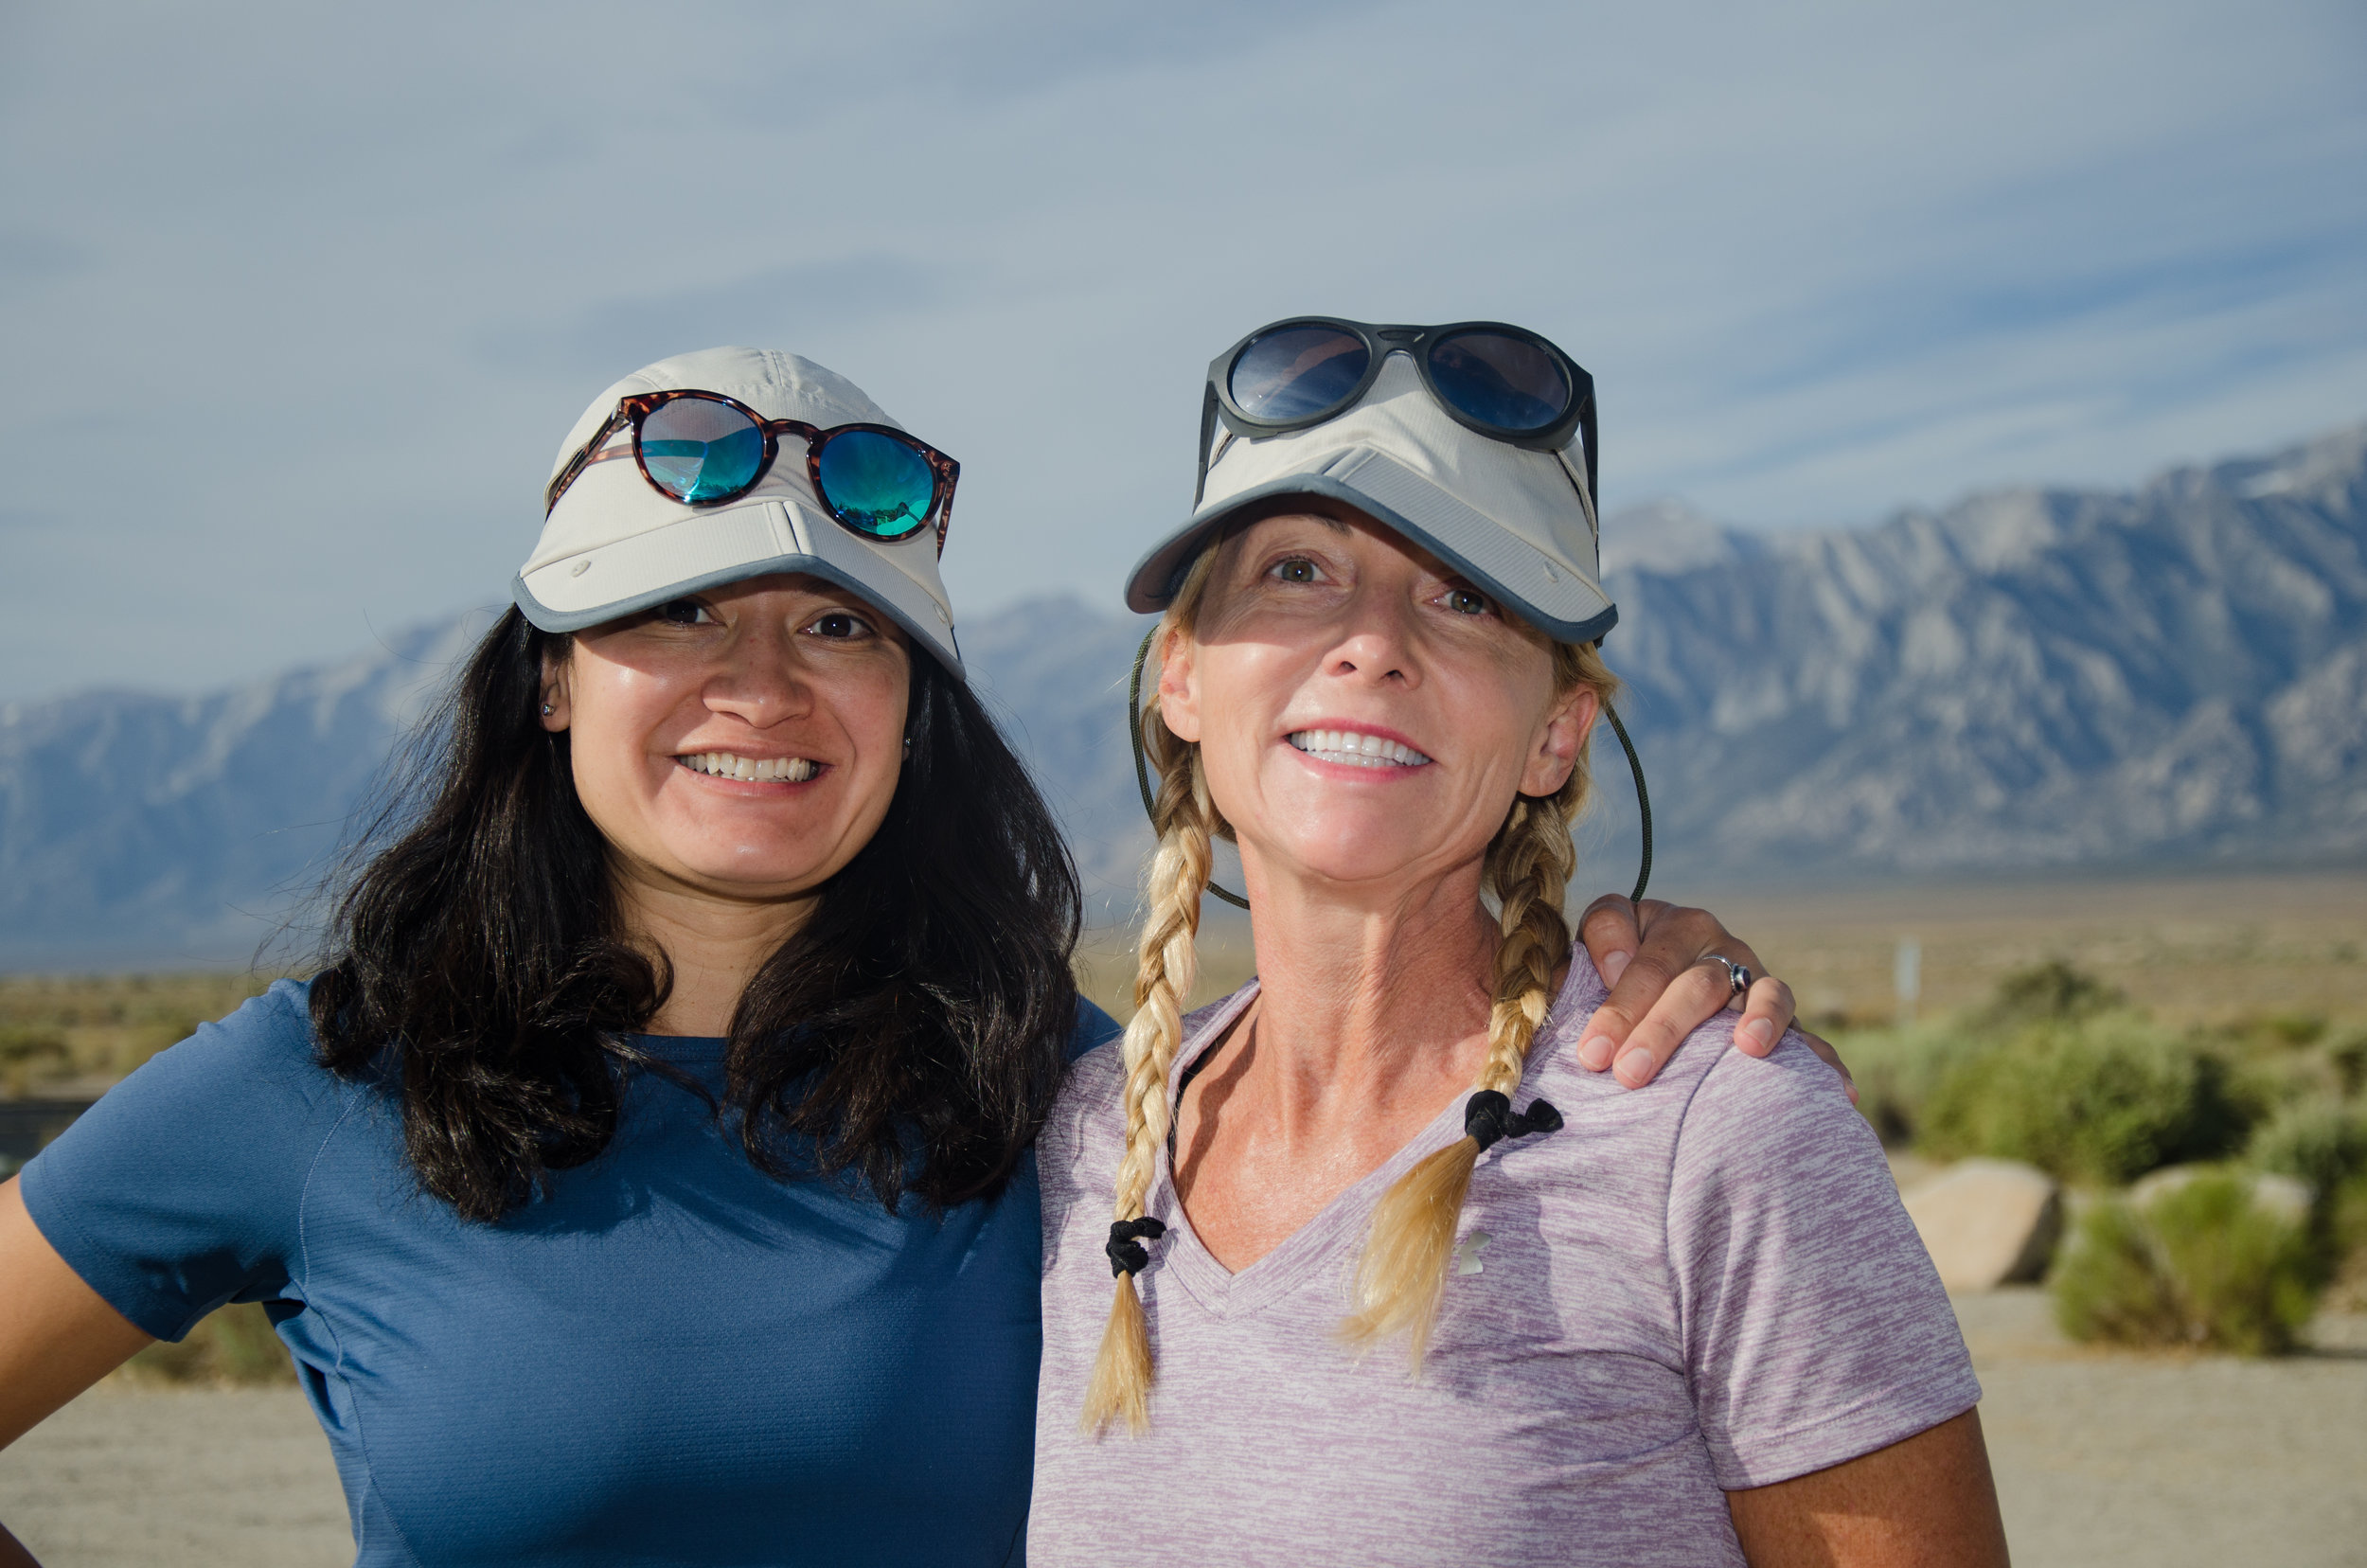 JMT Hikers Connie and Karla